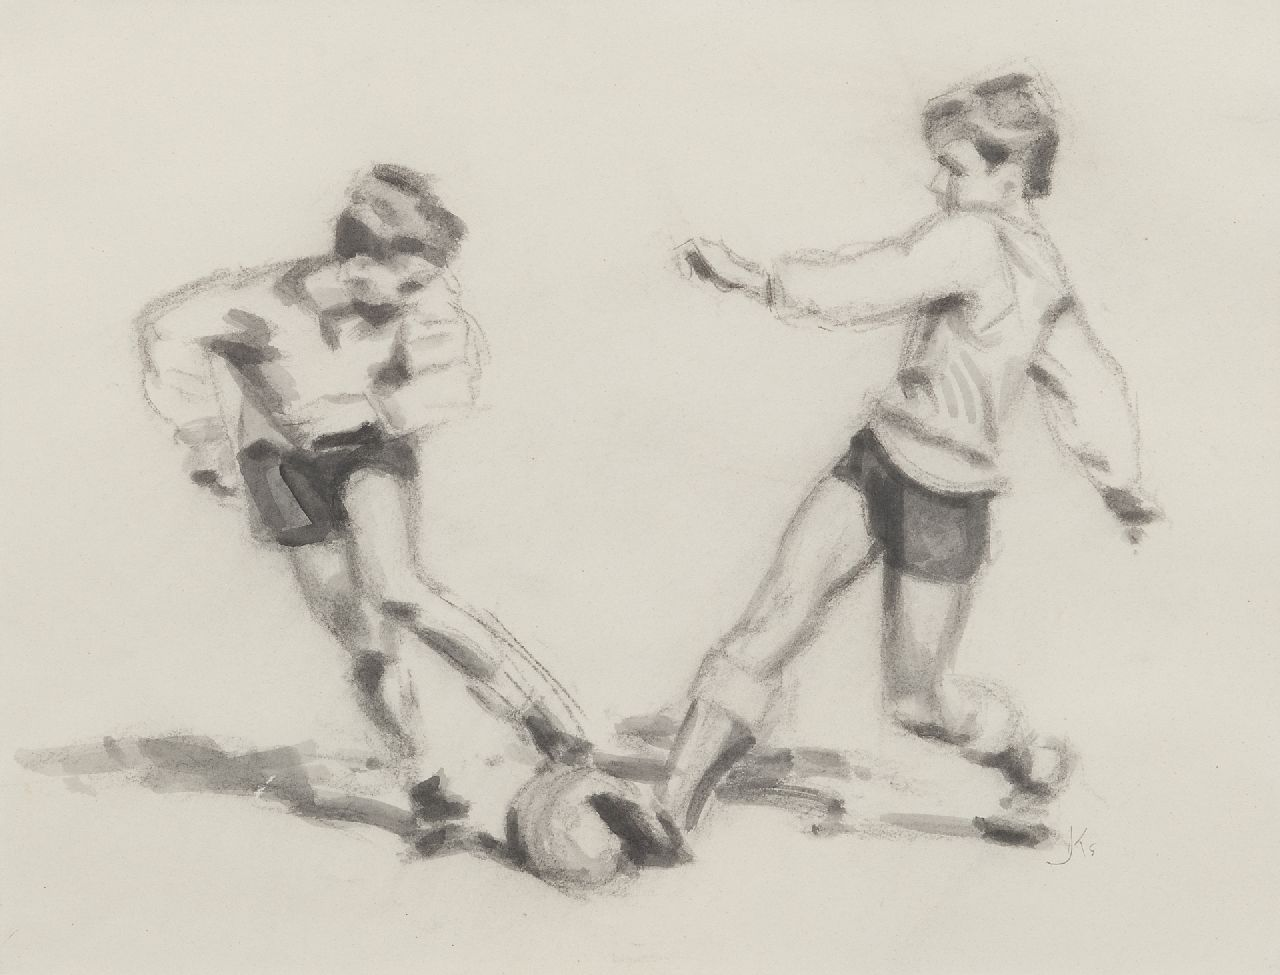 Bernardus Johannes Everhardus Kempers | Football player 3, charcoal and ink on paper, 38.0 x 48.0 cm, signed l.r. with monogram